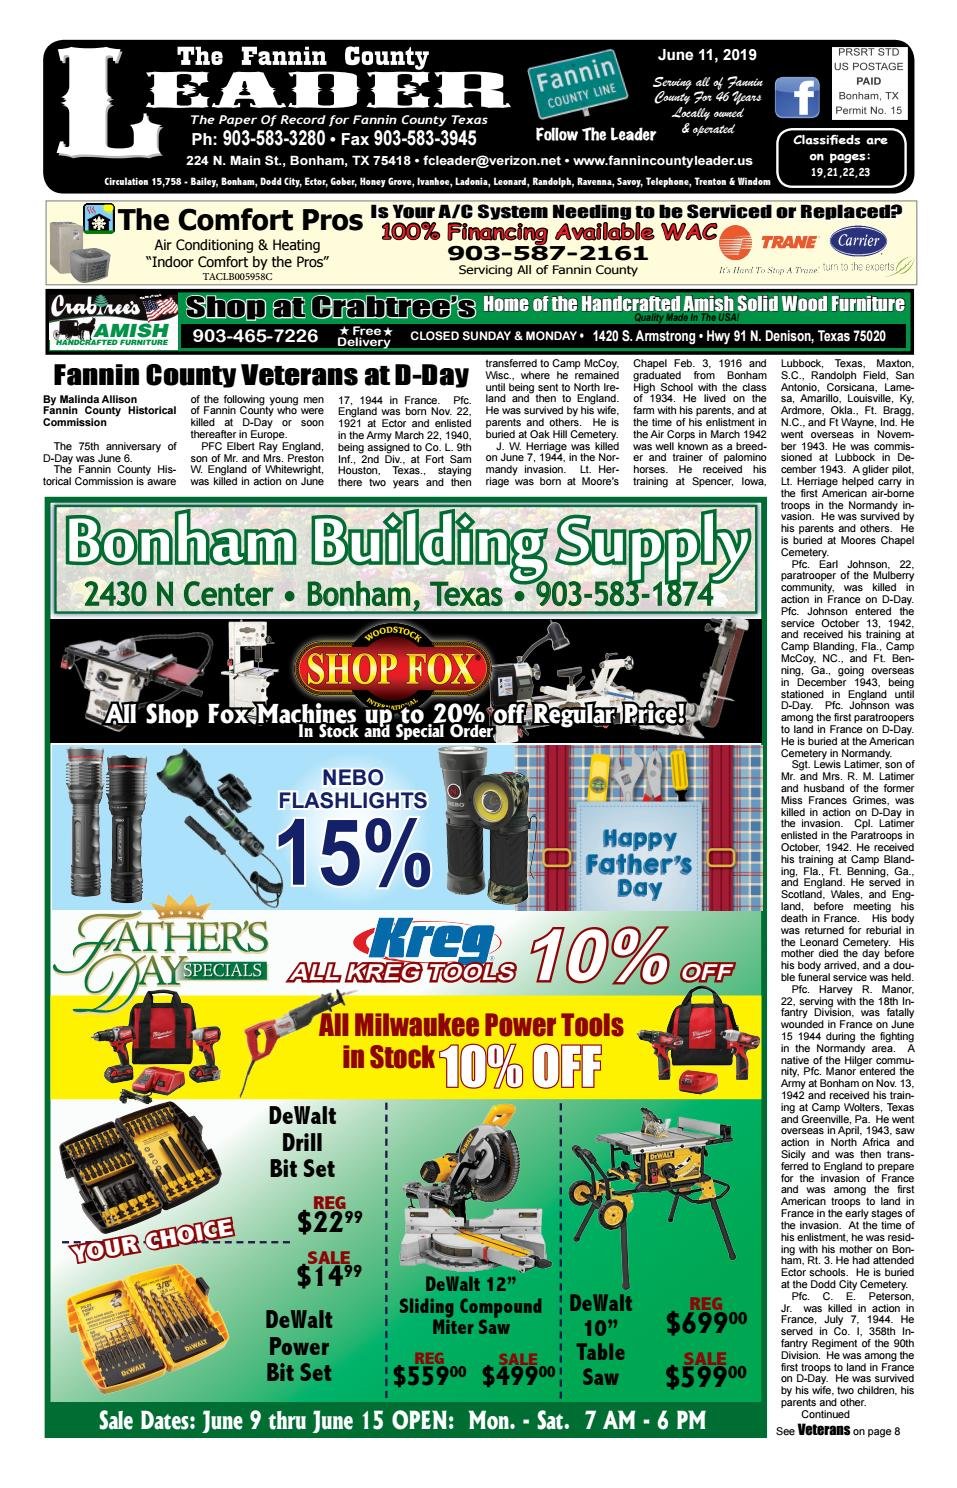 6-11-19 Leader E-Edition by The Fannin County Leader - issuu